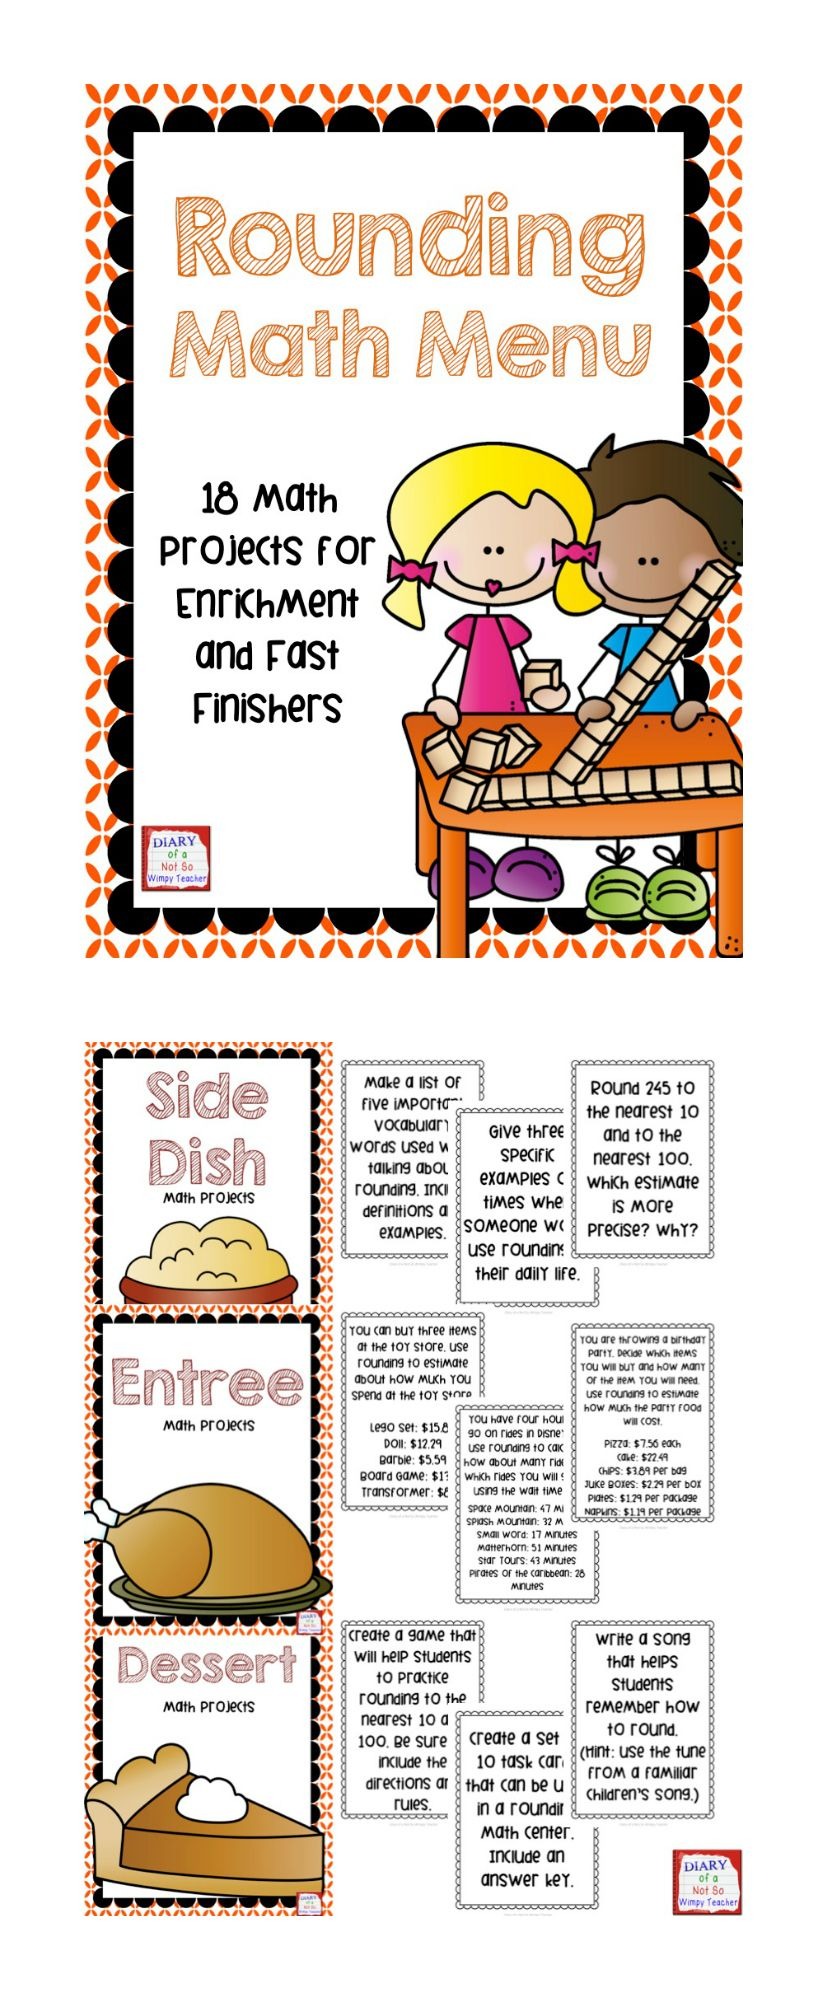 worksheet Rounding Games For 3rd Grade rounding math menu choice board with 18 projects boards projects